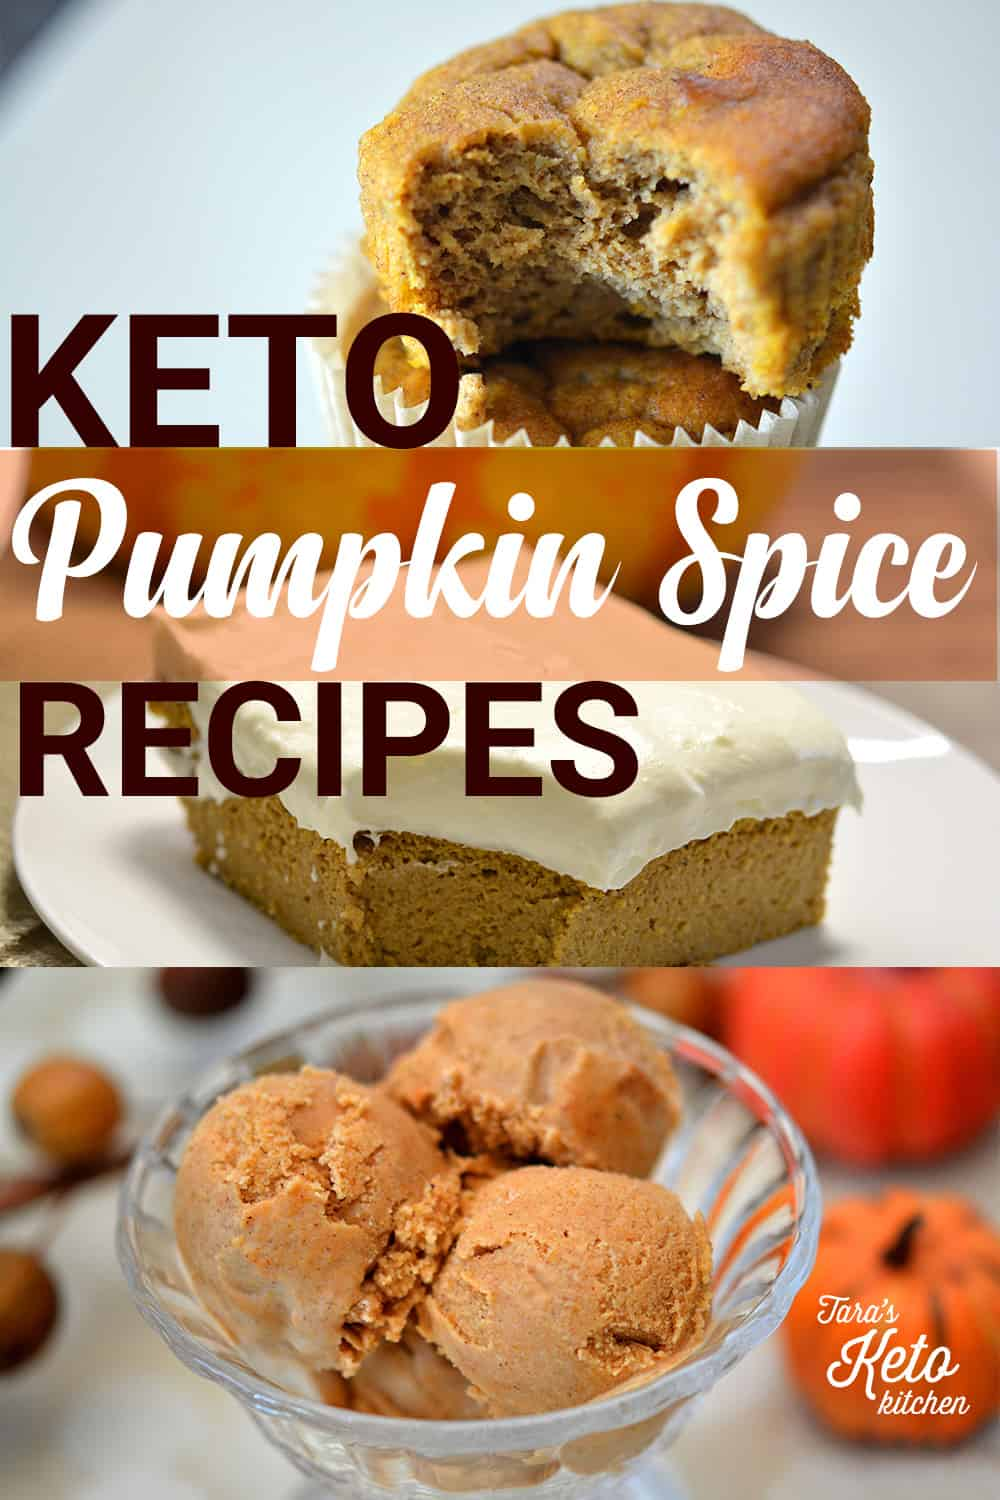 three keto pumpkin spice recipes